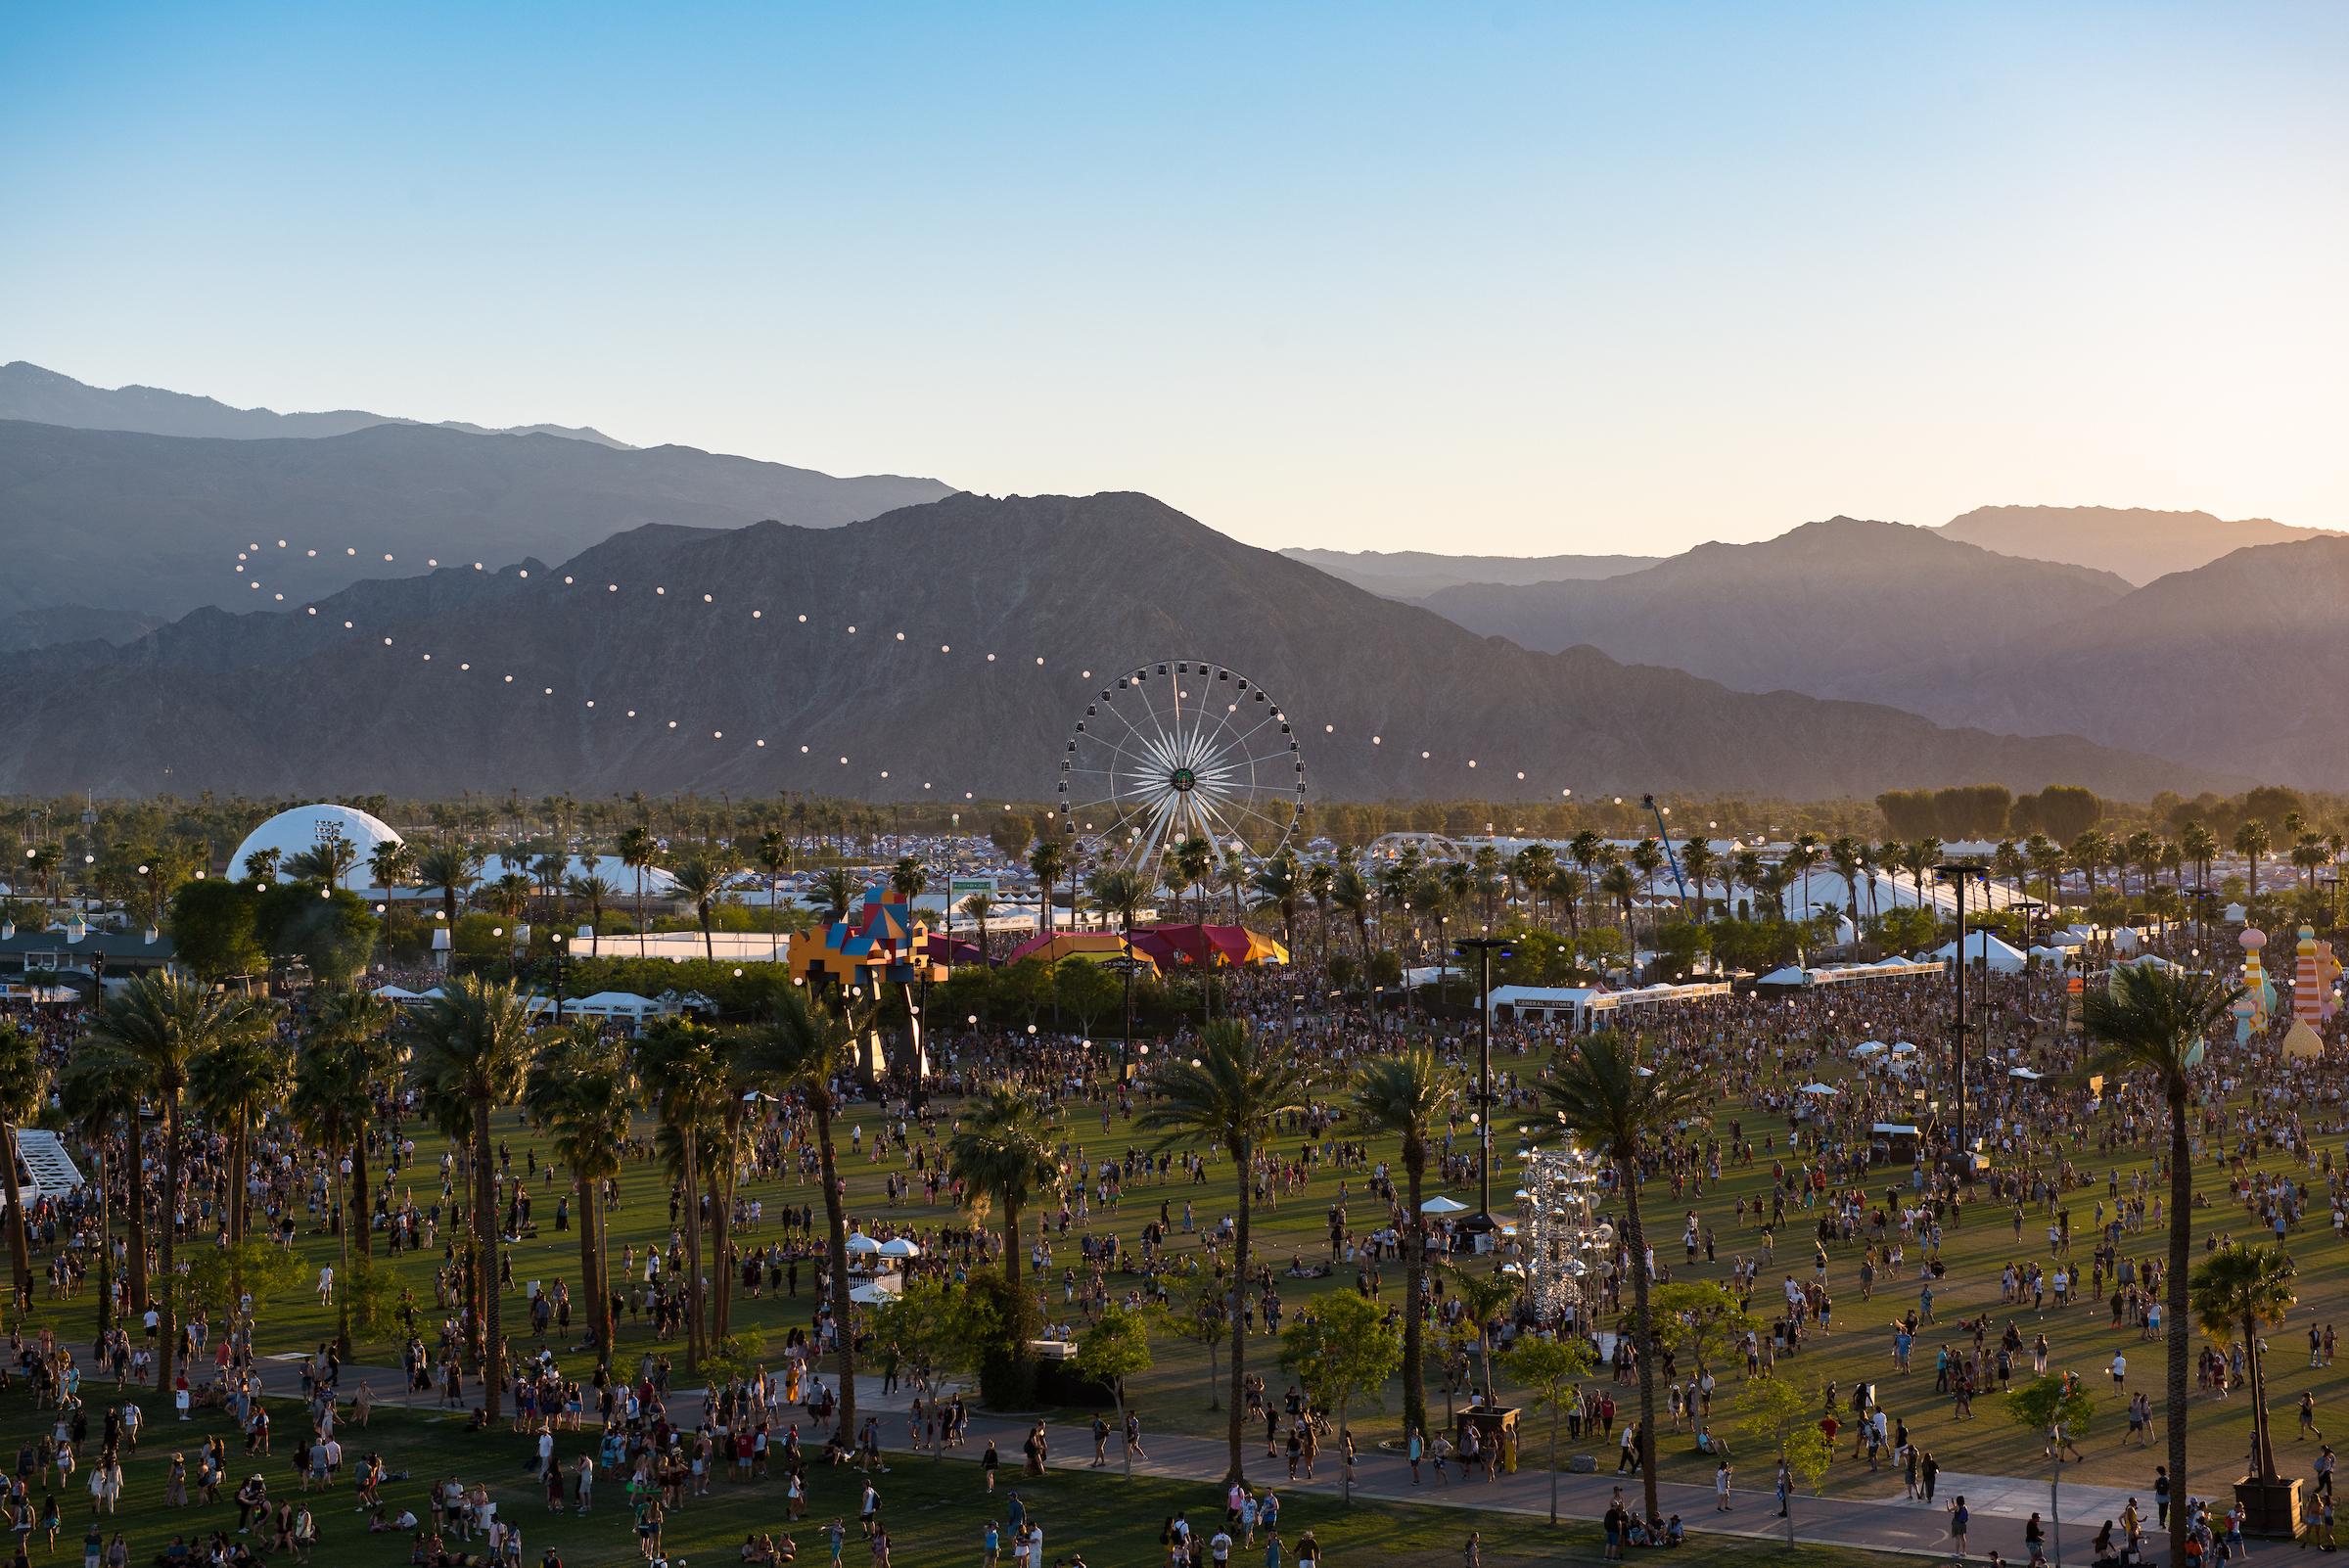 Coachella Bans Weed, Even Though It's Legal in California